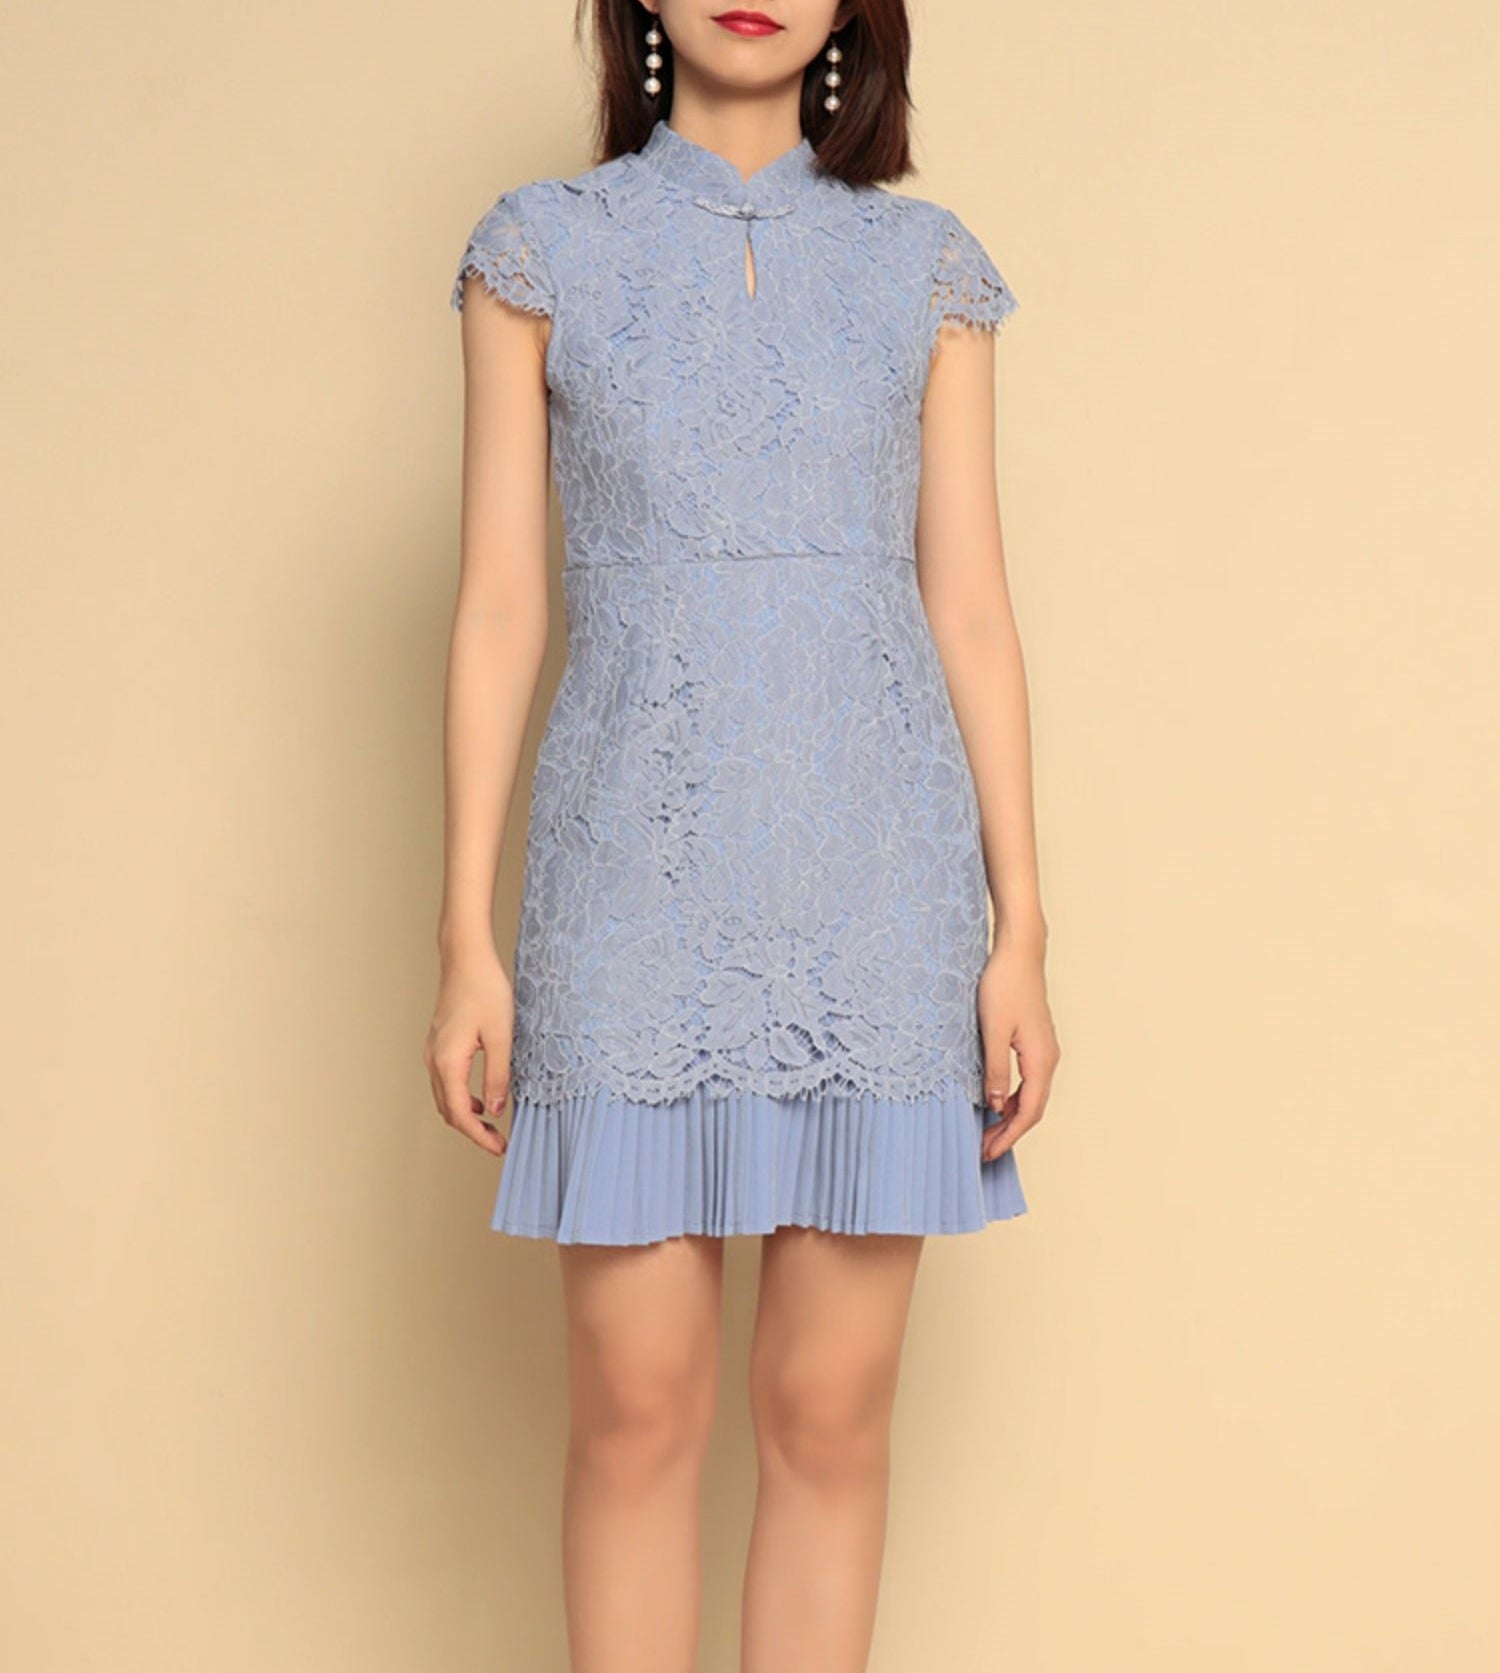 Ivy cheongsam dress (READY STOCK IN POWDER BLUE L/5 colours)